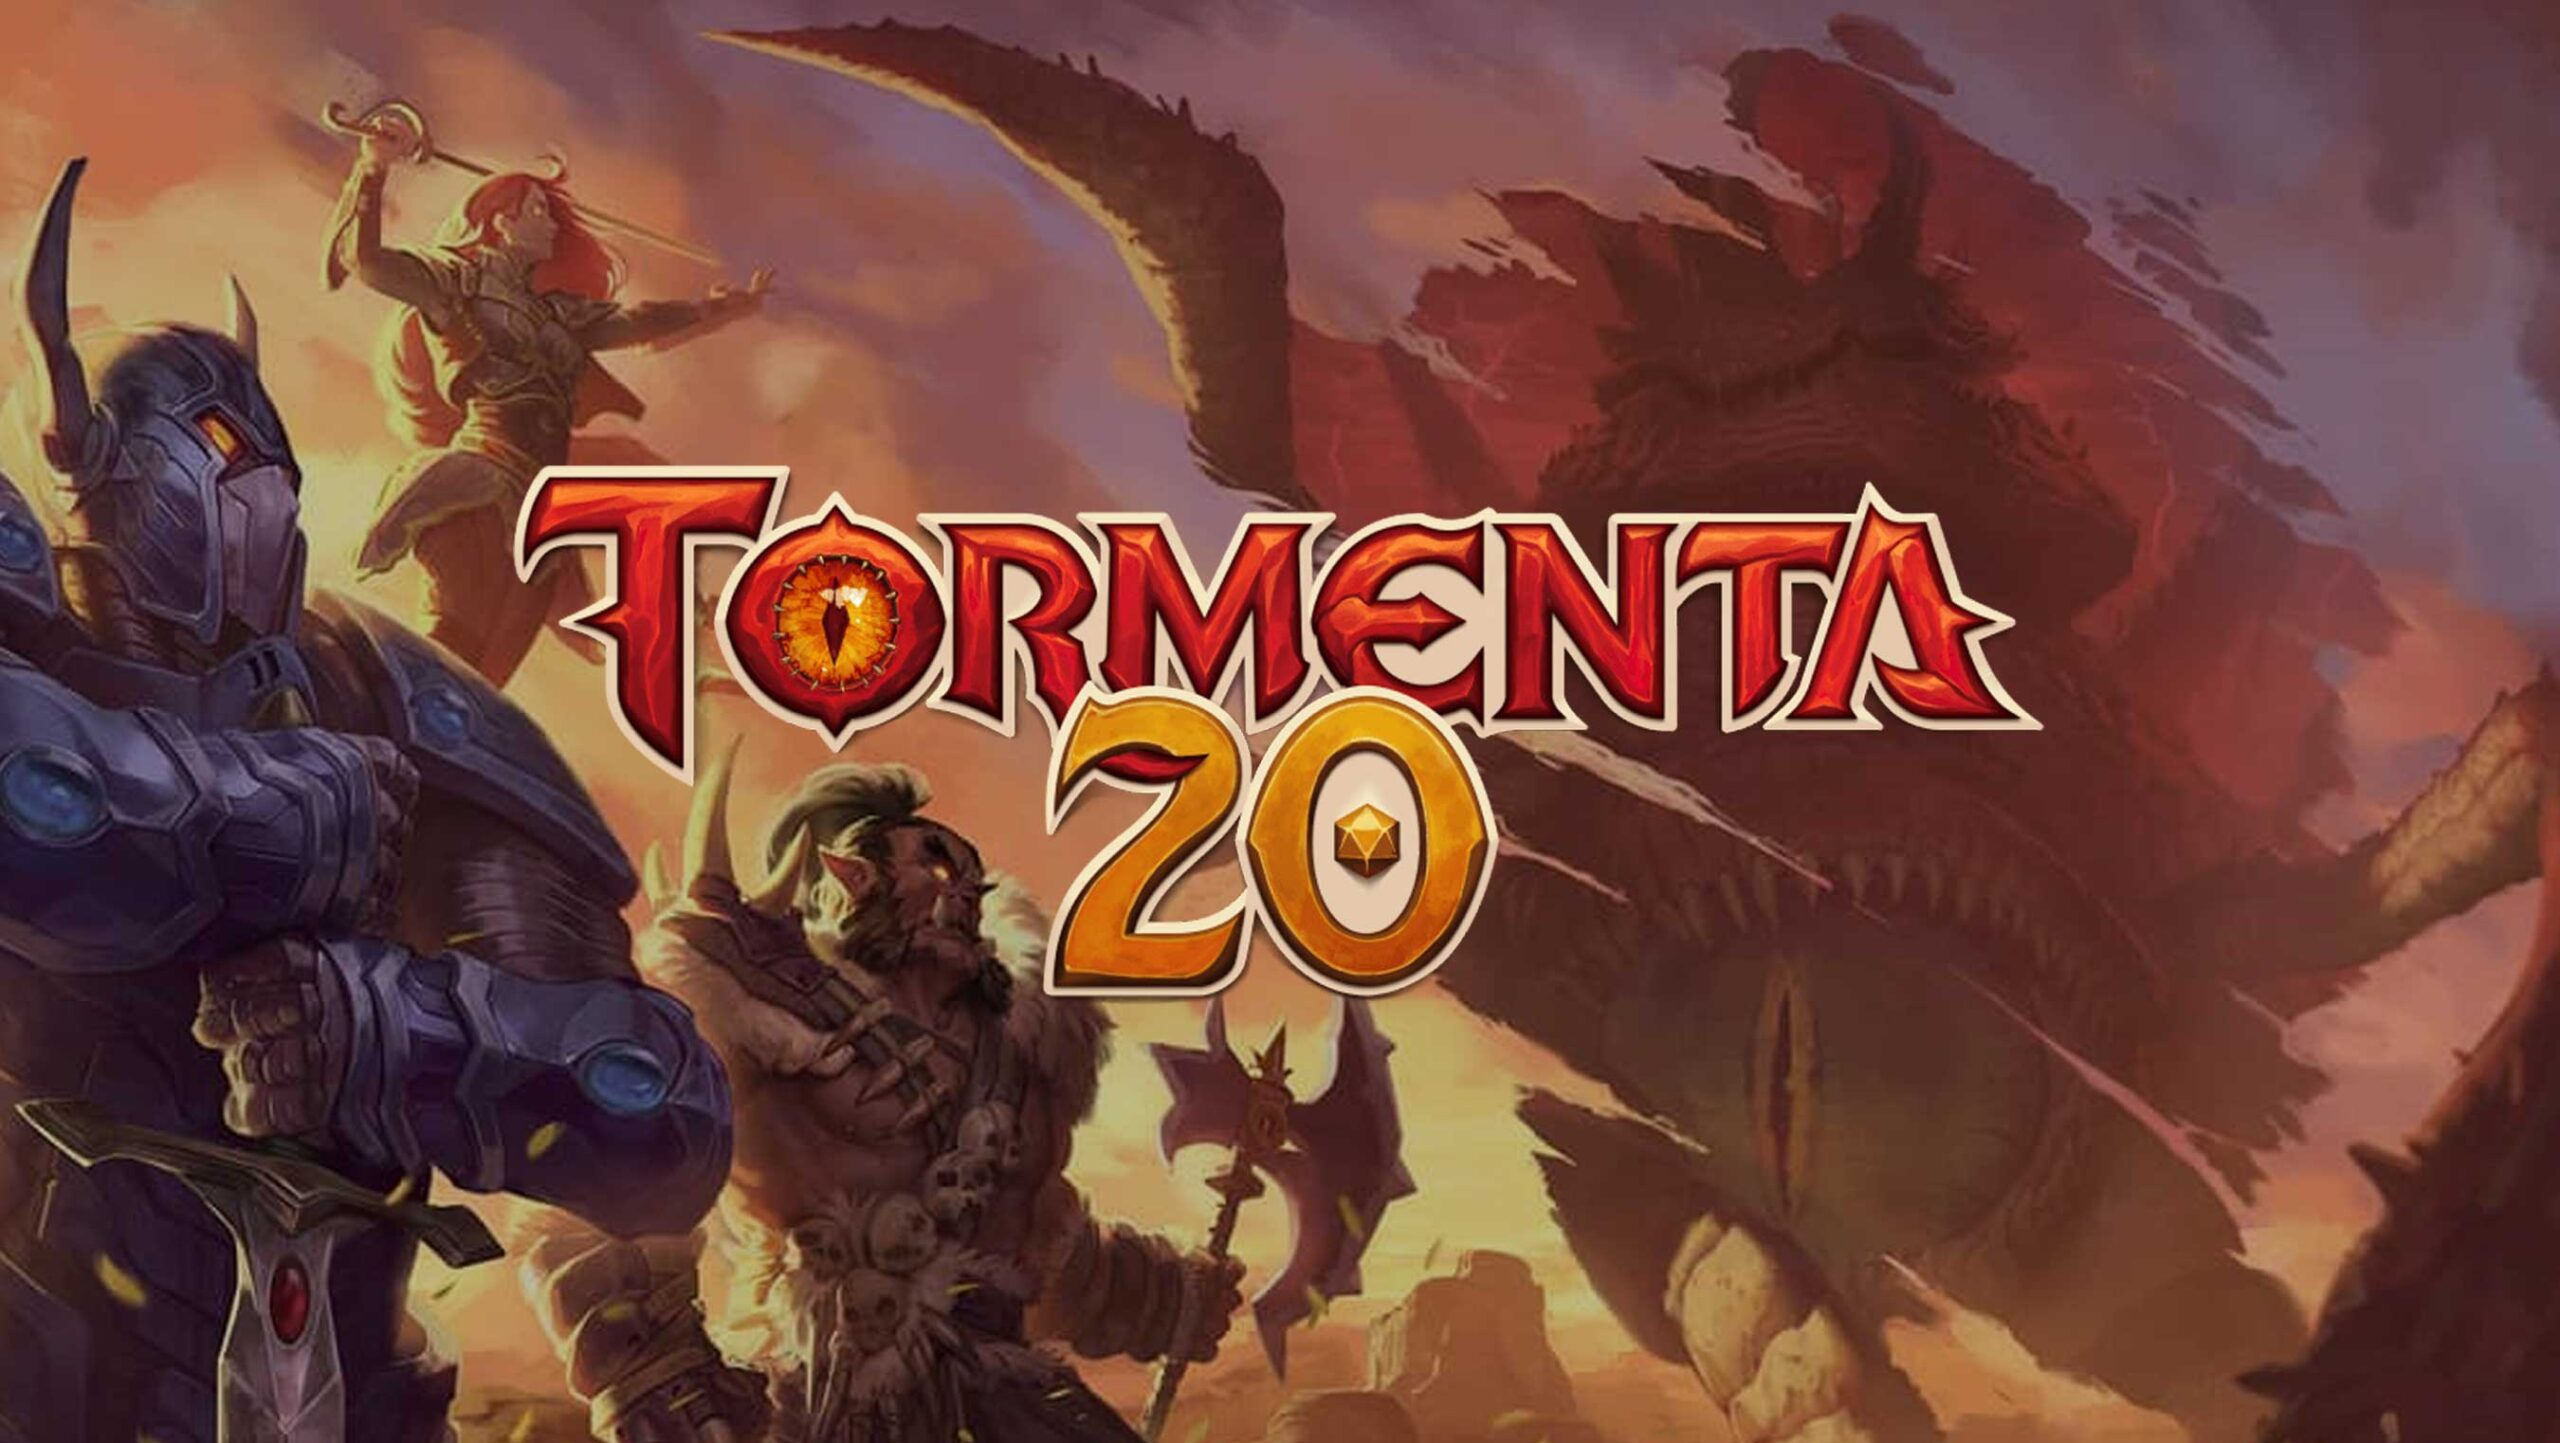 Tormenta20-Ficha-de-Personagem-v1.5